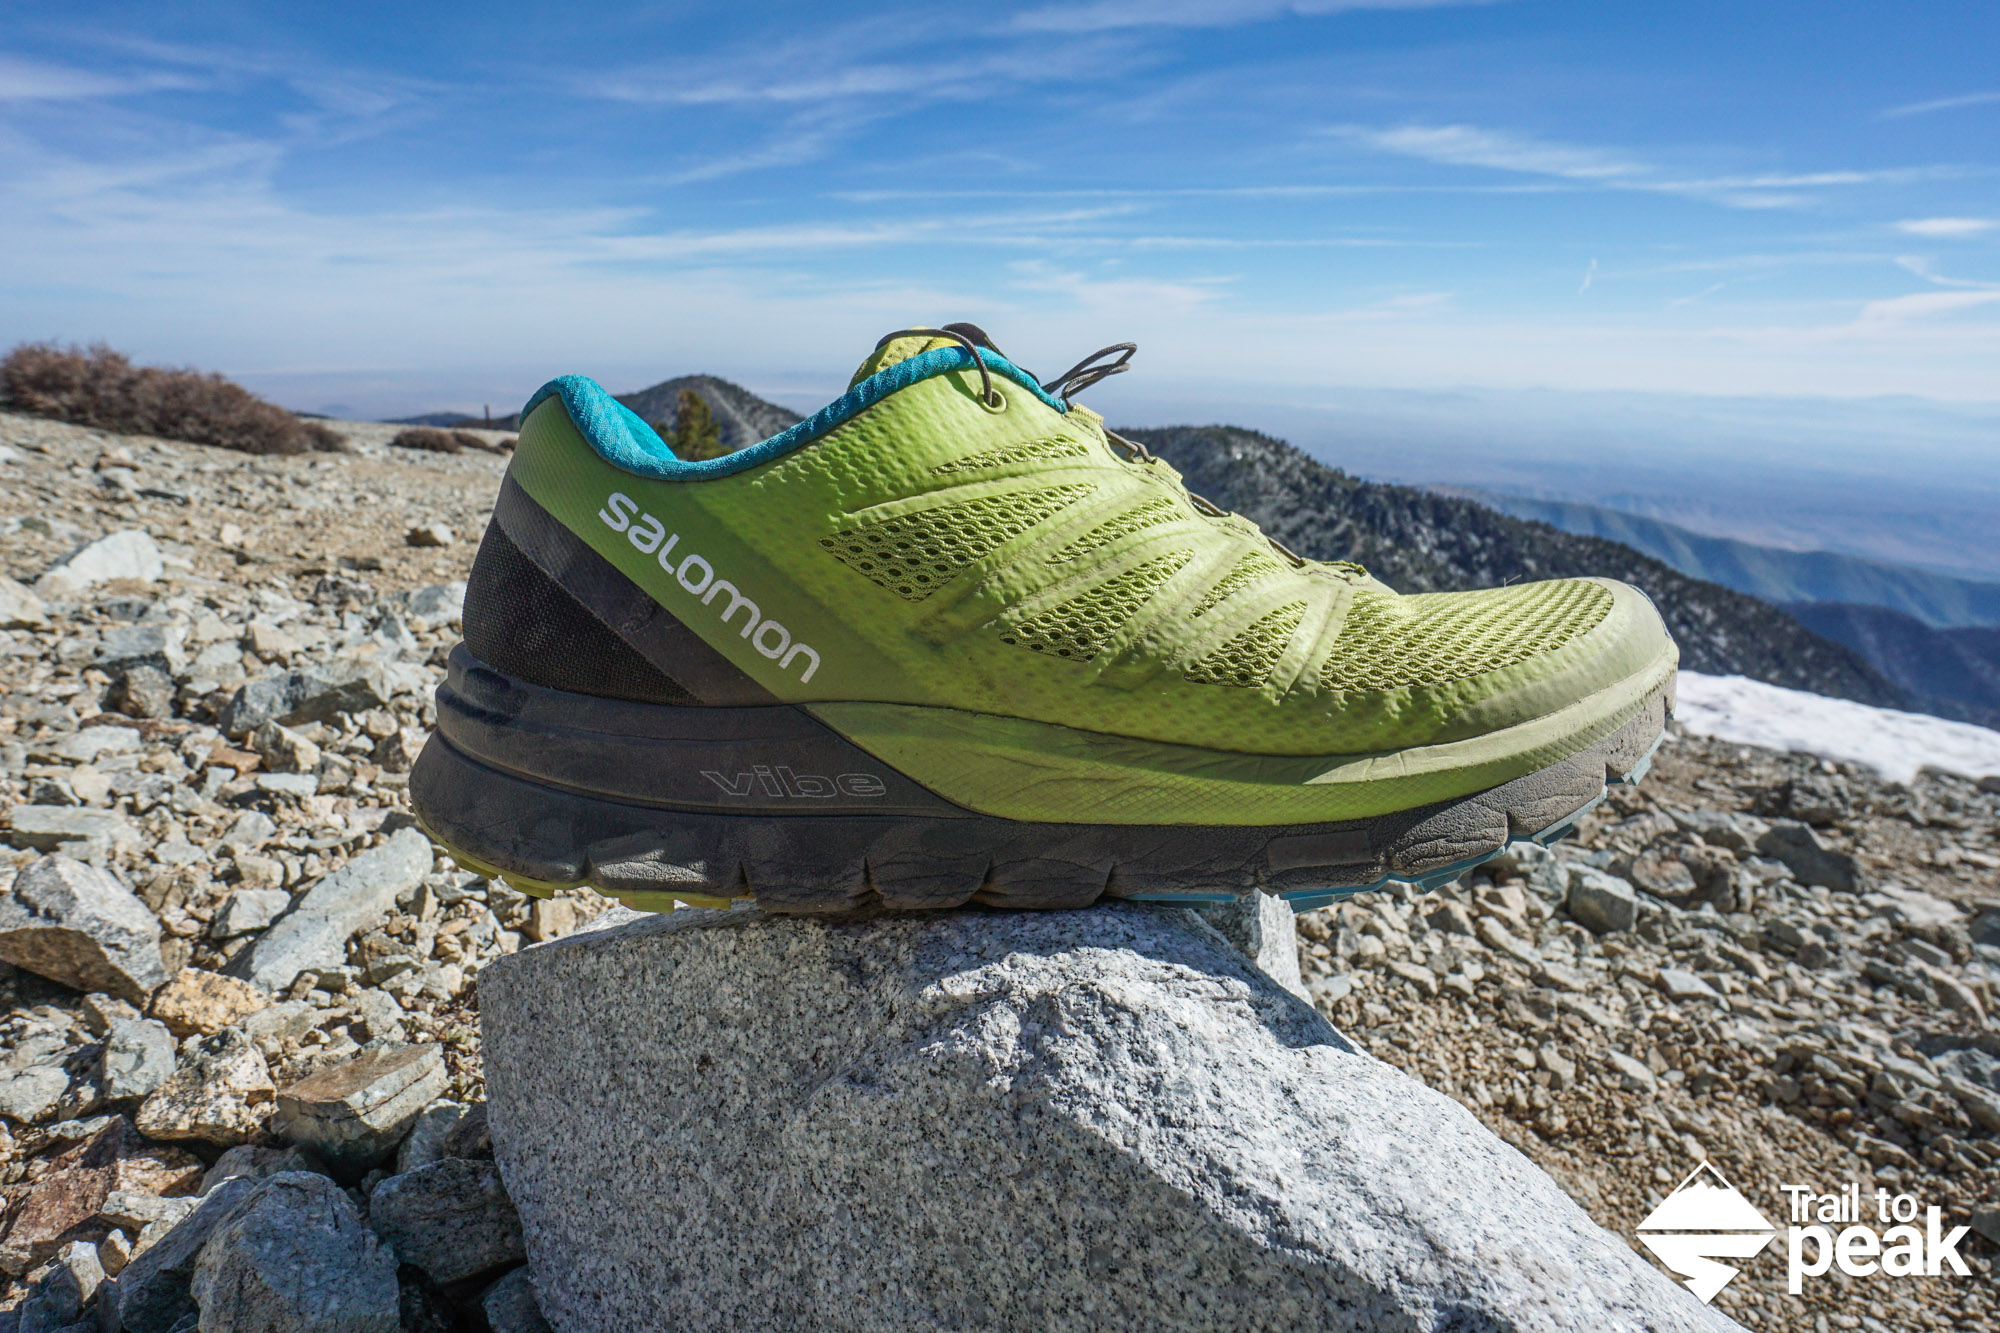 Gear Review Salomon Sense Pro Max Hiking Trail Running